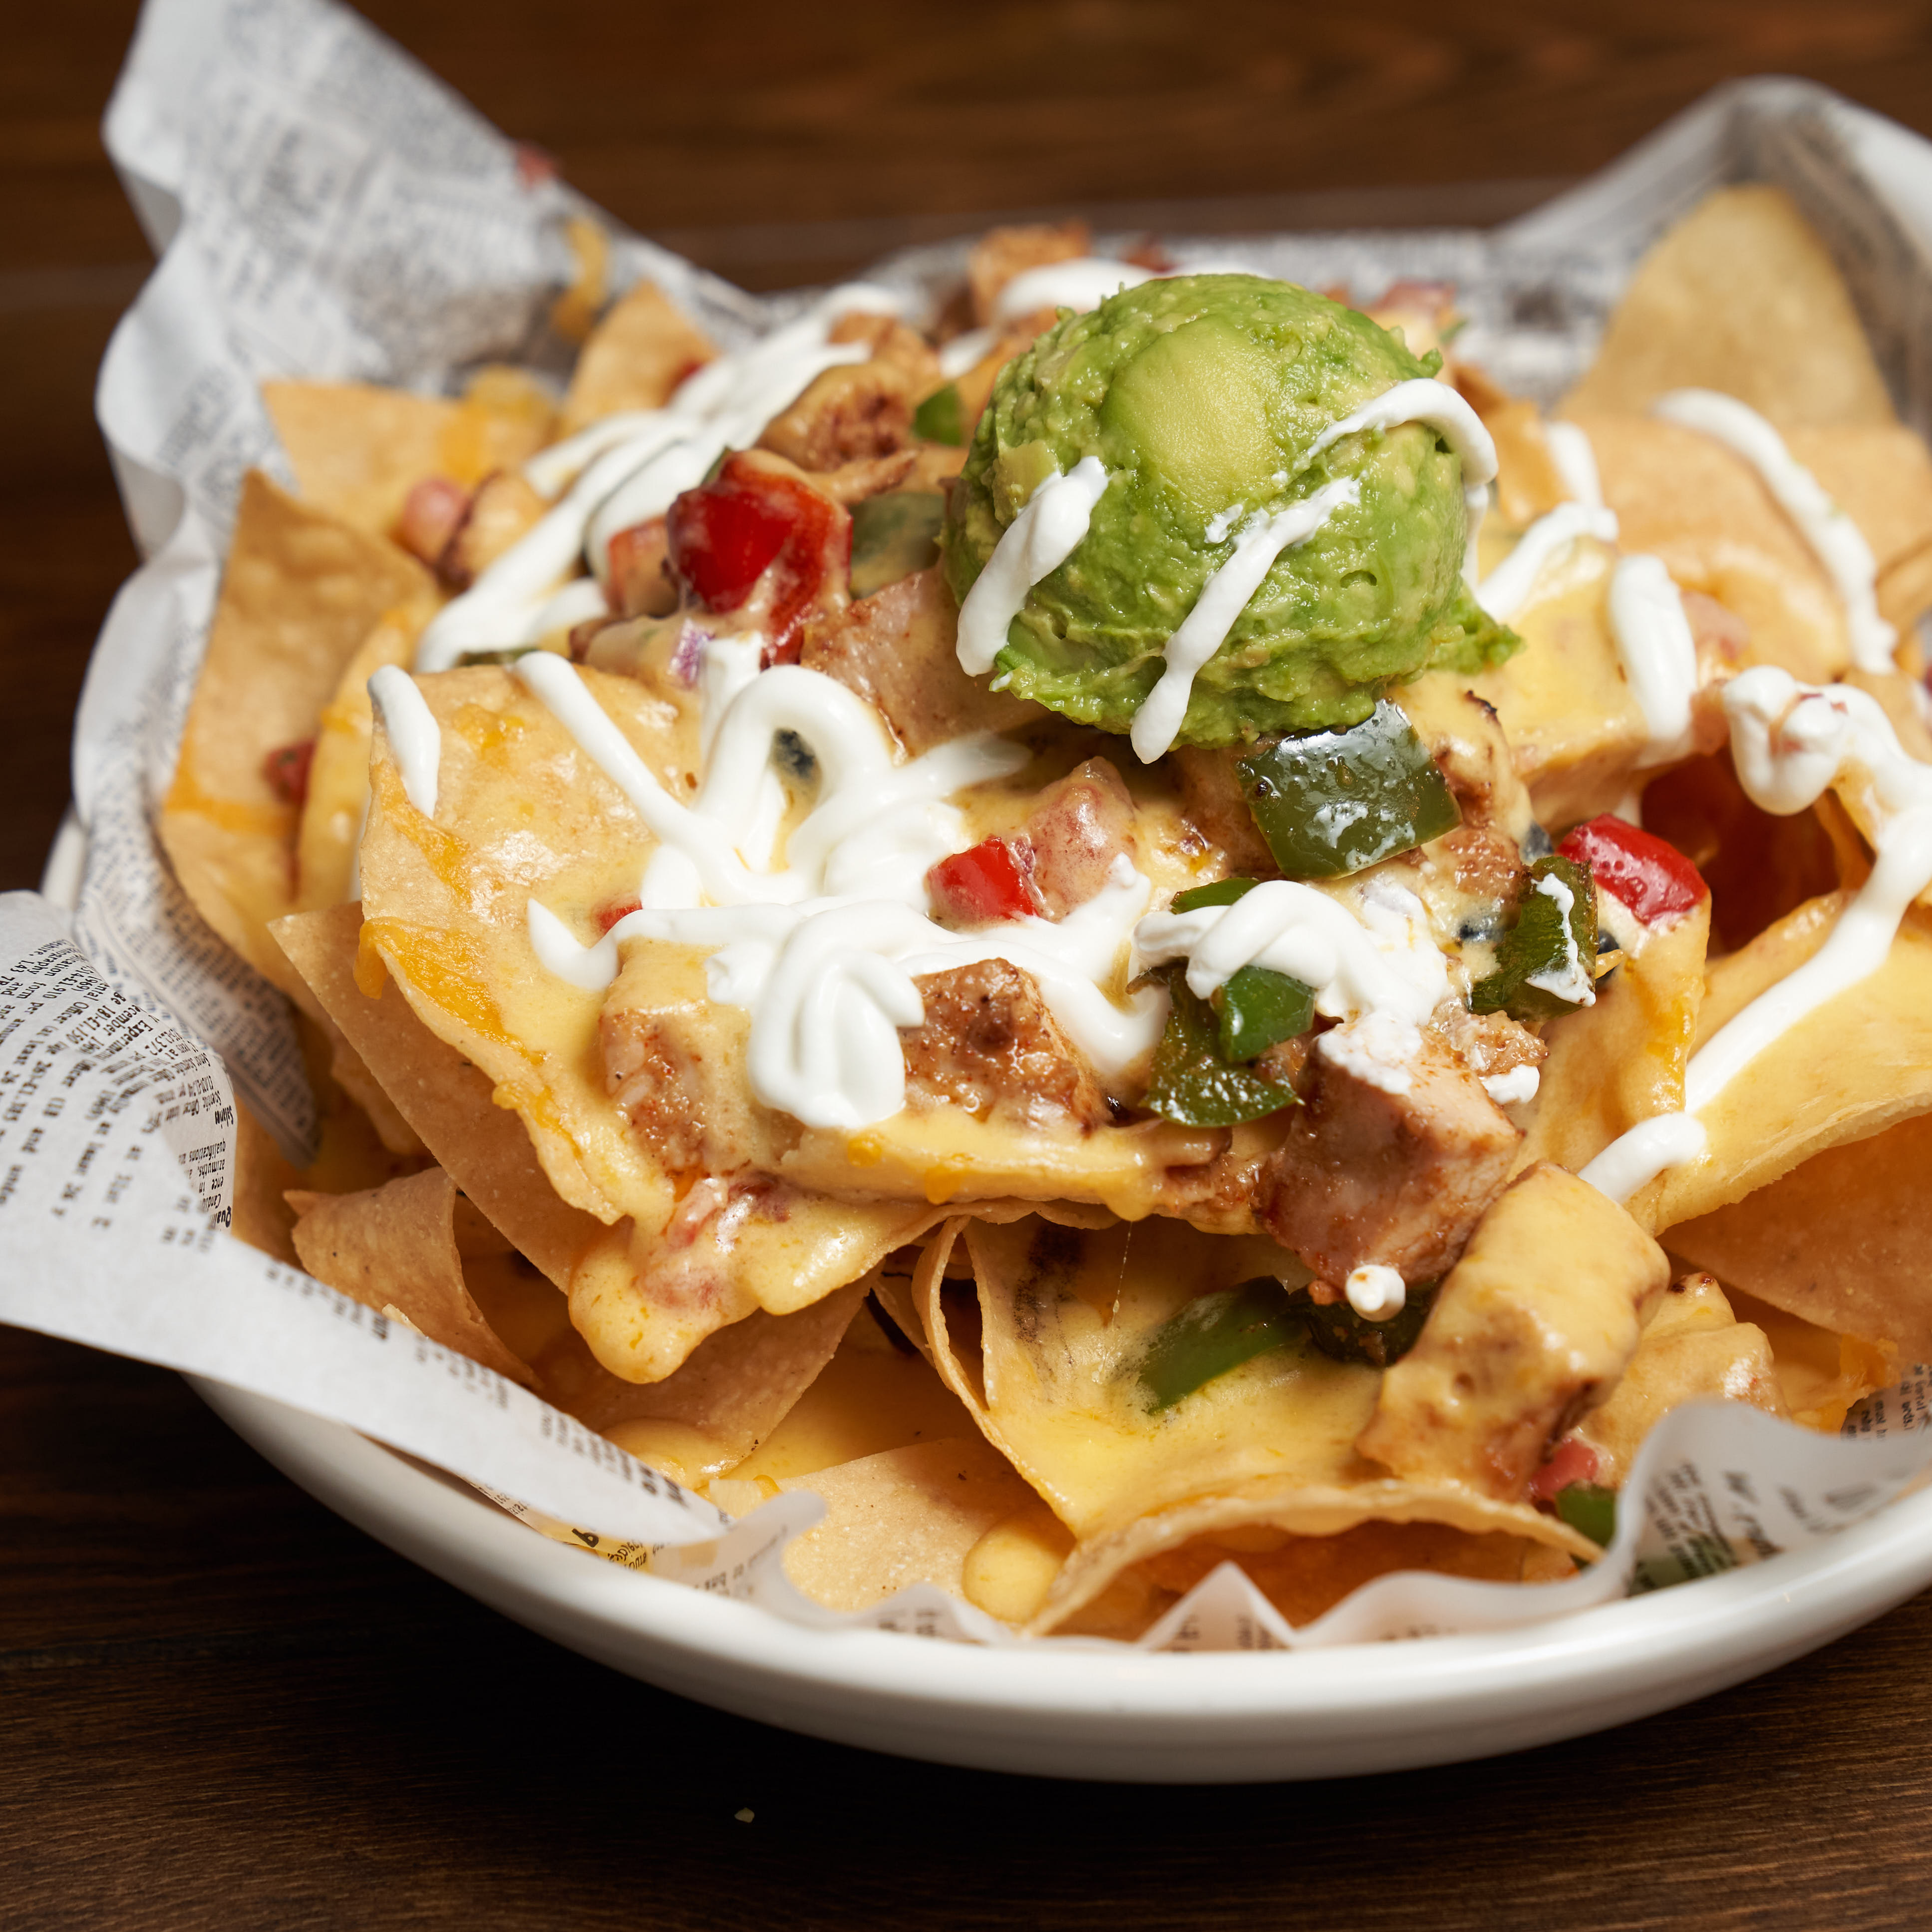 Pictured in this image is the nachos dish.